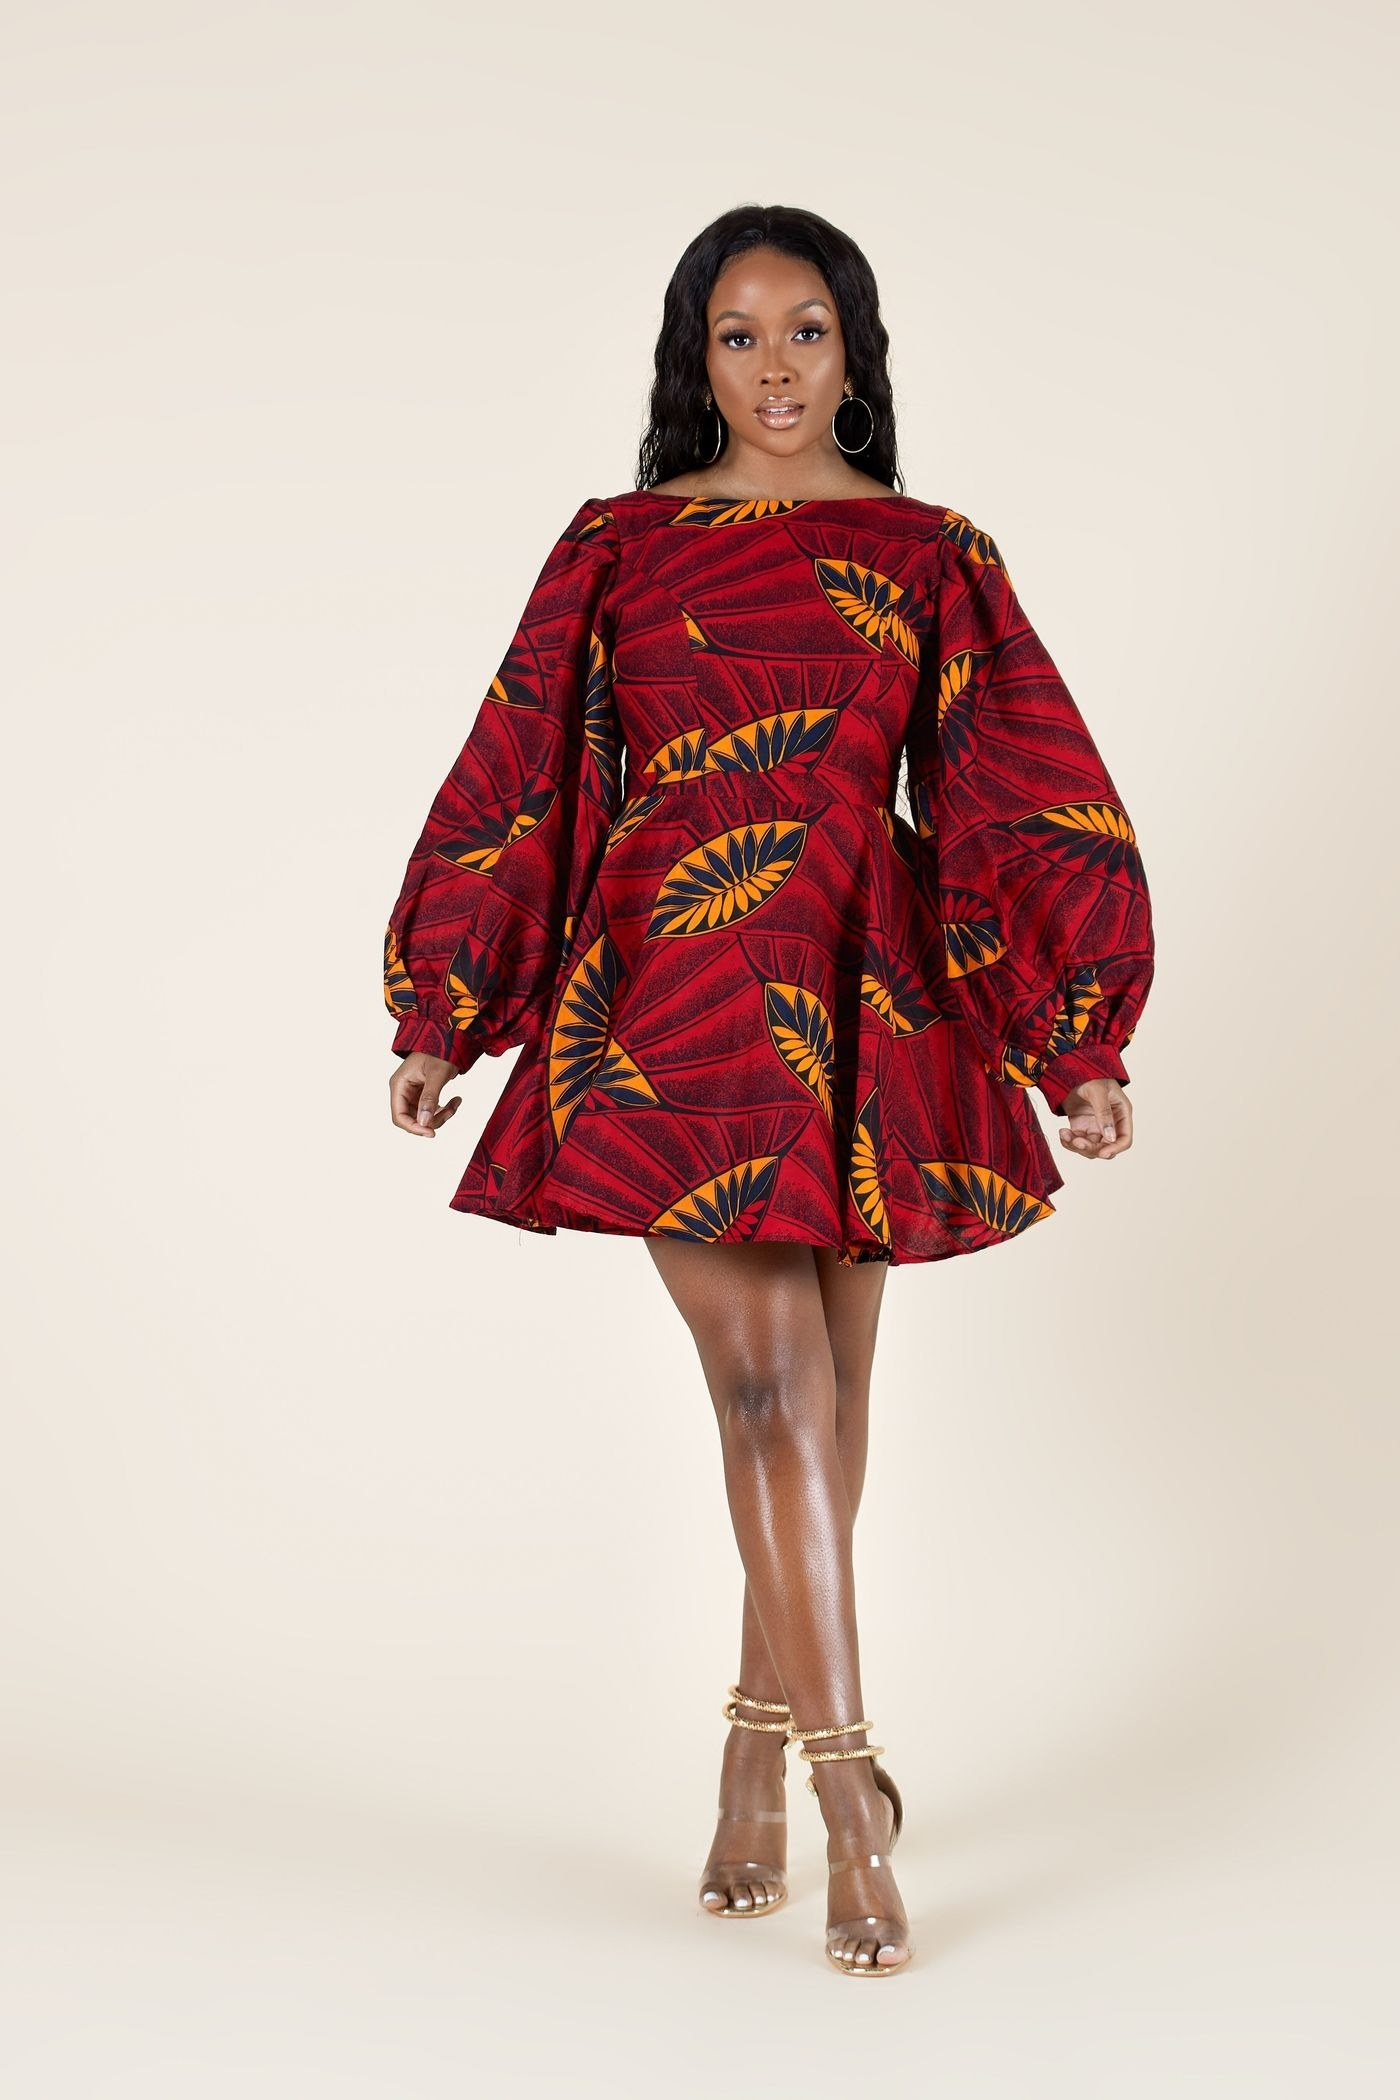 model wearing a short A-line dress with bell sleeves in a red, orange, and black Ankara print